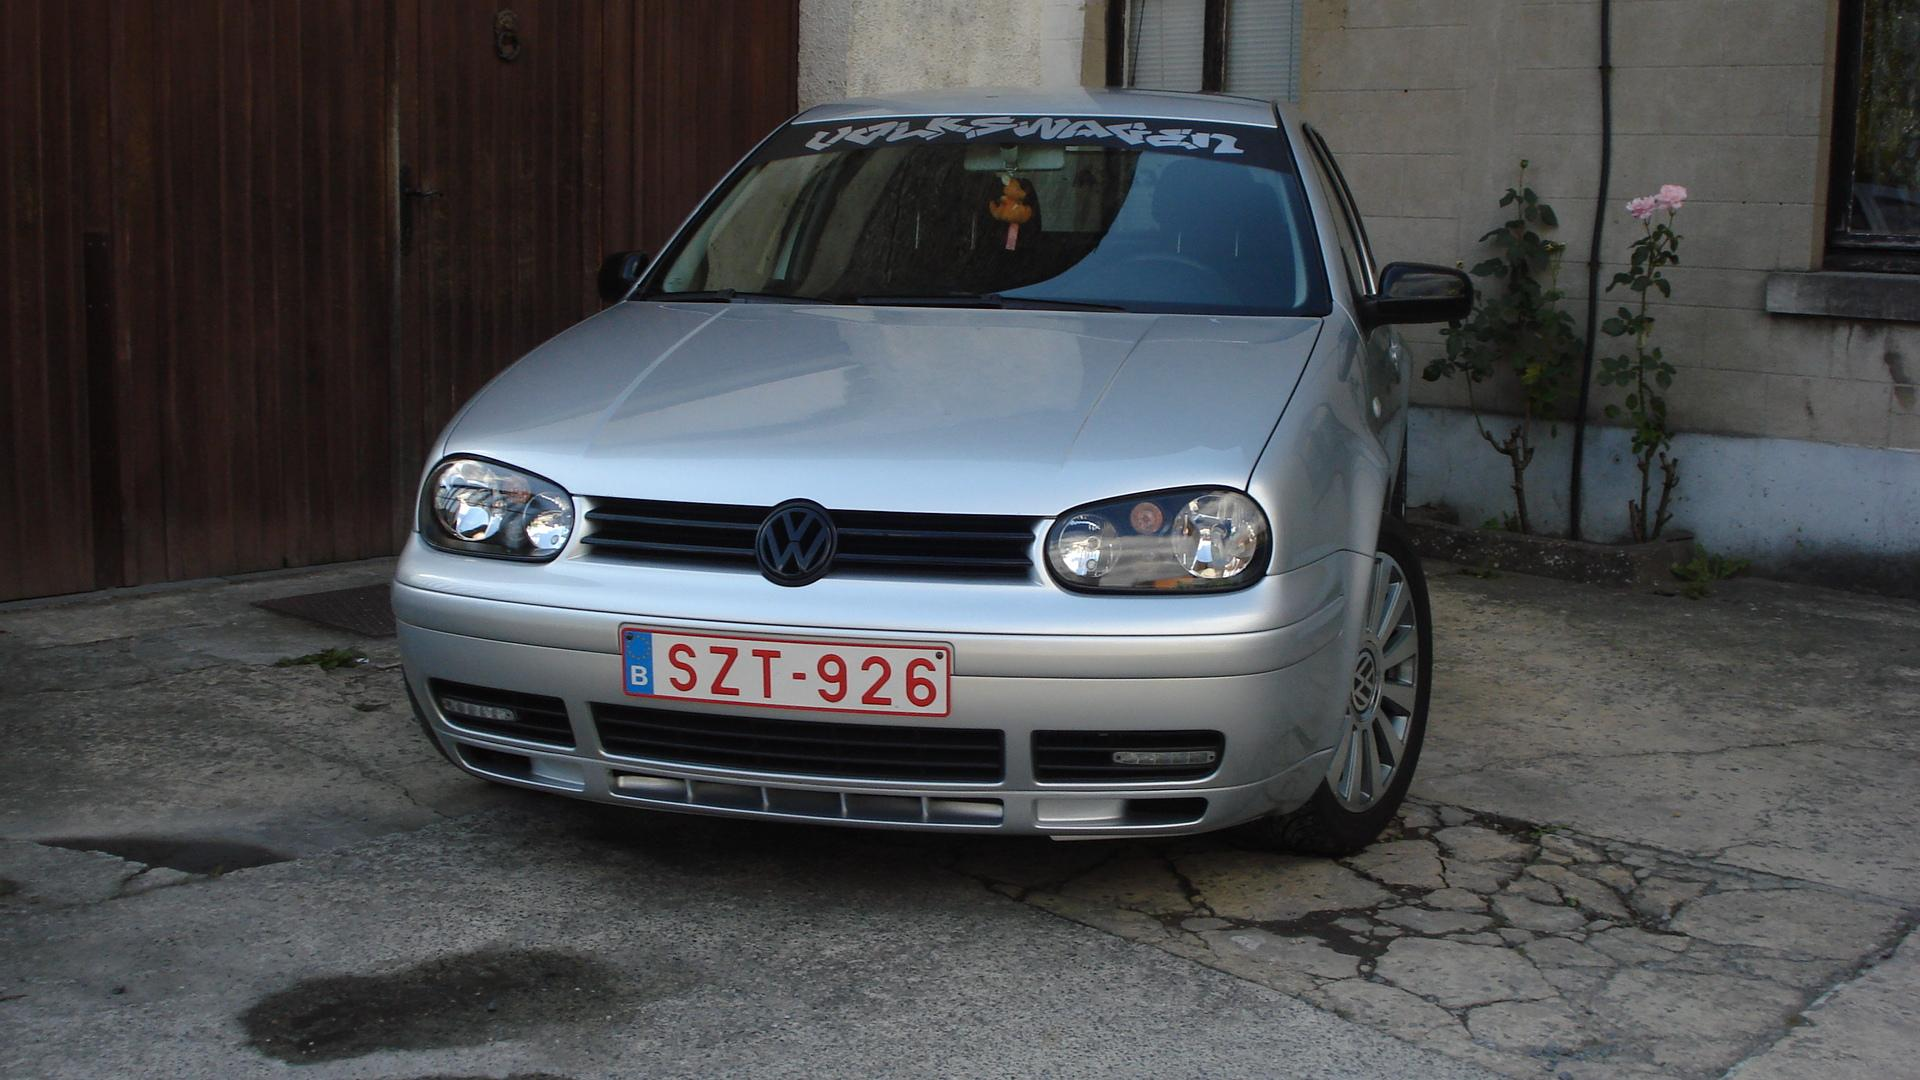 golf iv tdi 90 de podo garage des golf iv tdi 90 page 13 forum volkswagen golf iv. Black Bedroom Furniture Sets. Home Design Ideas